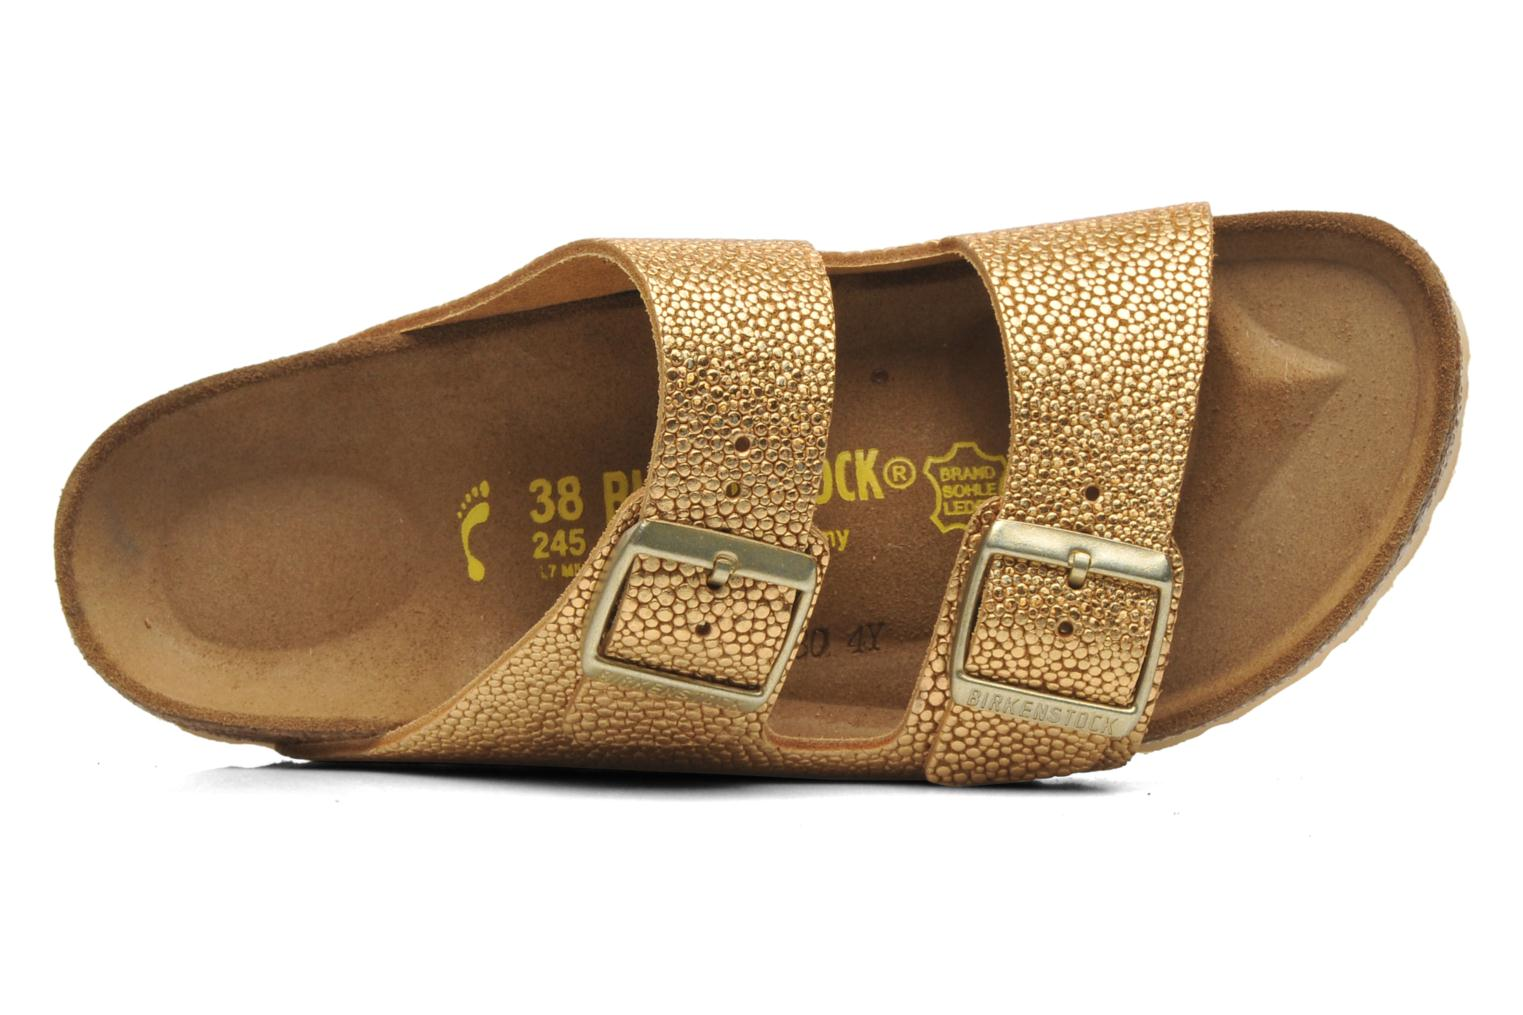 Arizona Cuir W Pebbles Metallic Gold